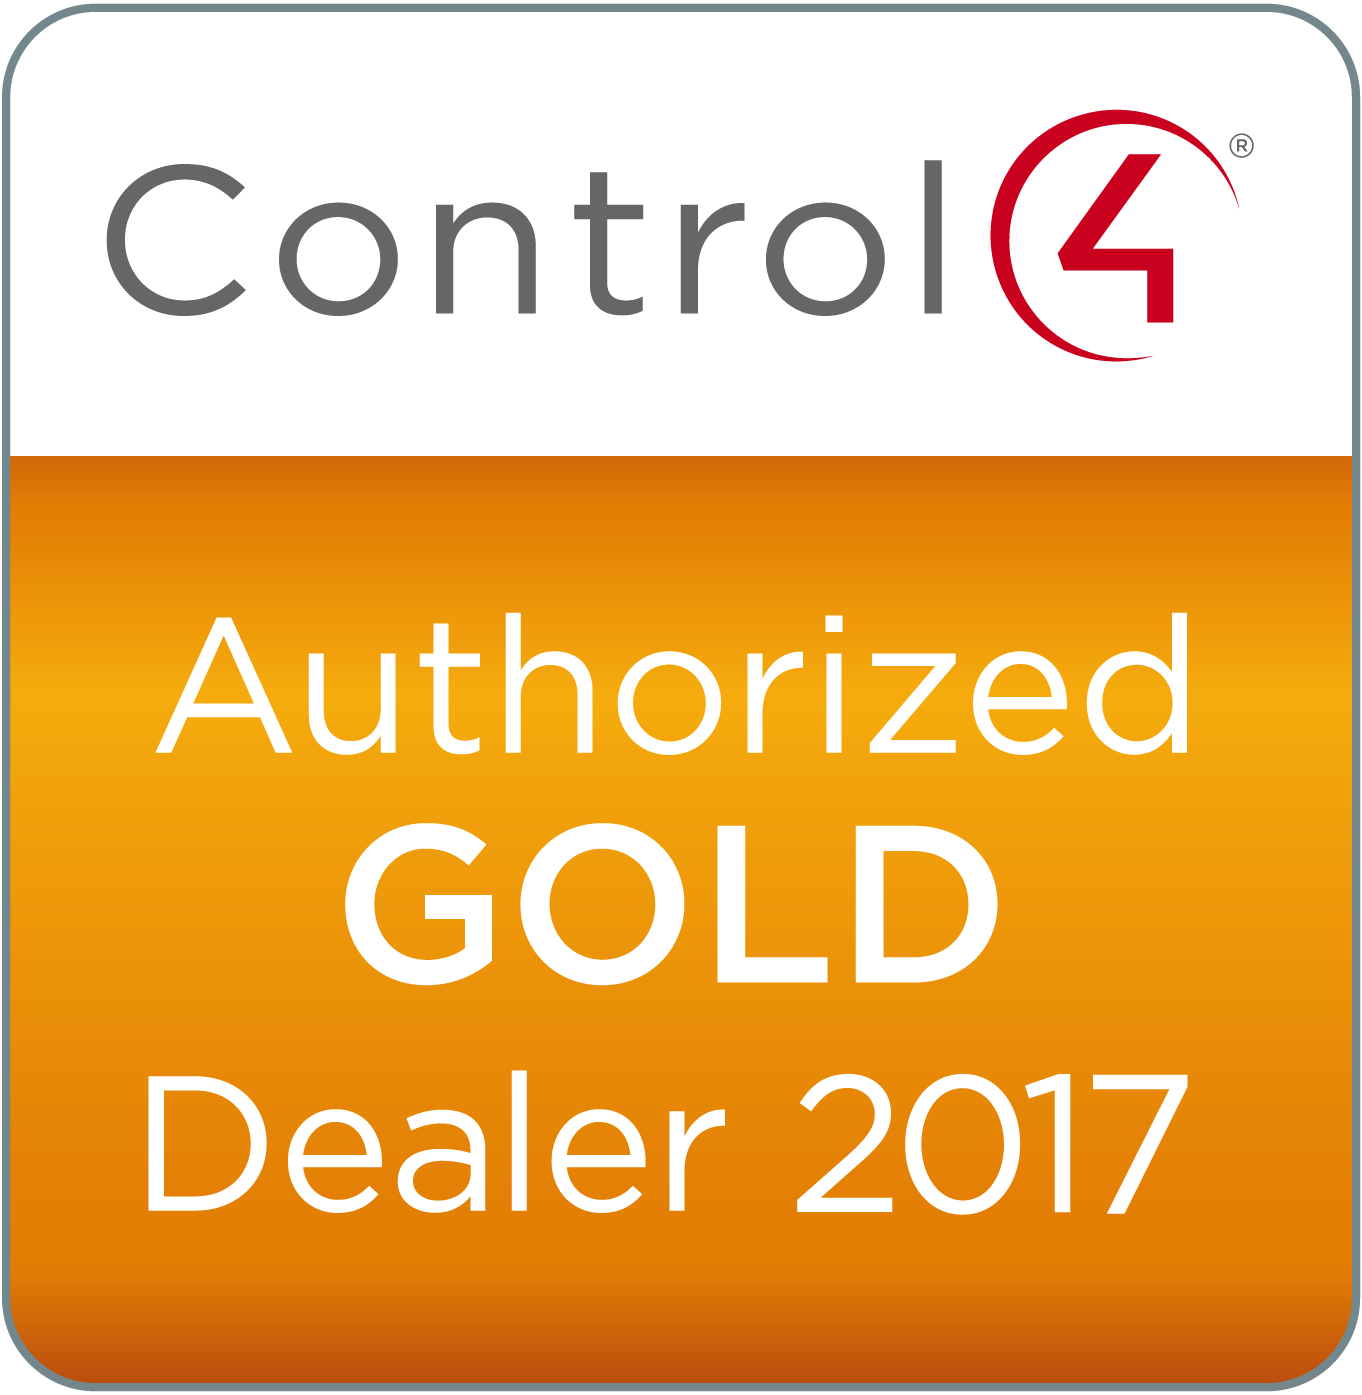 Premier Control4 Dealer - New York